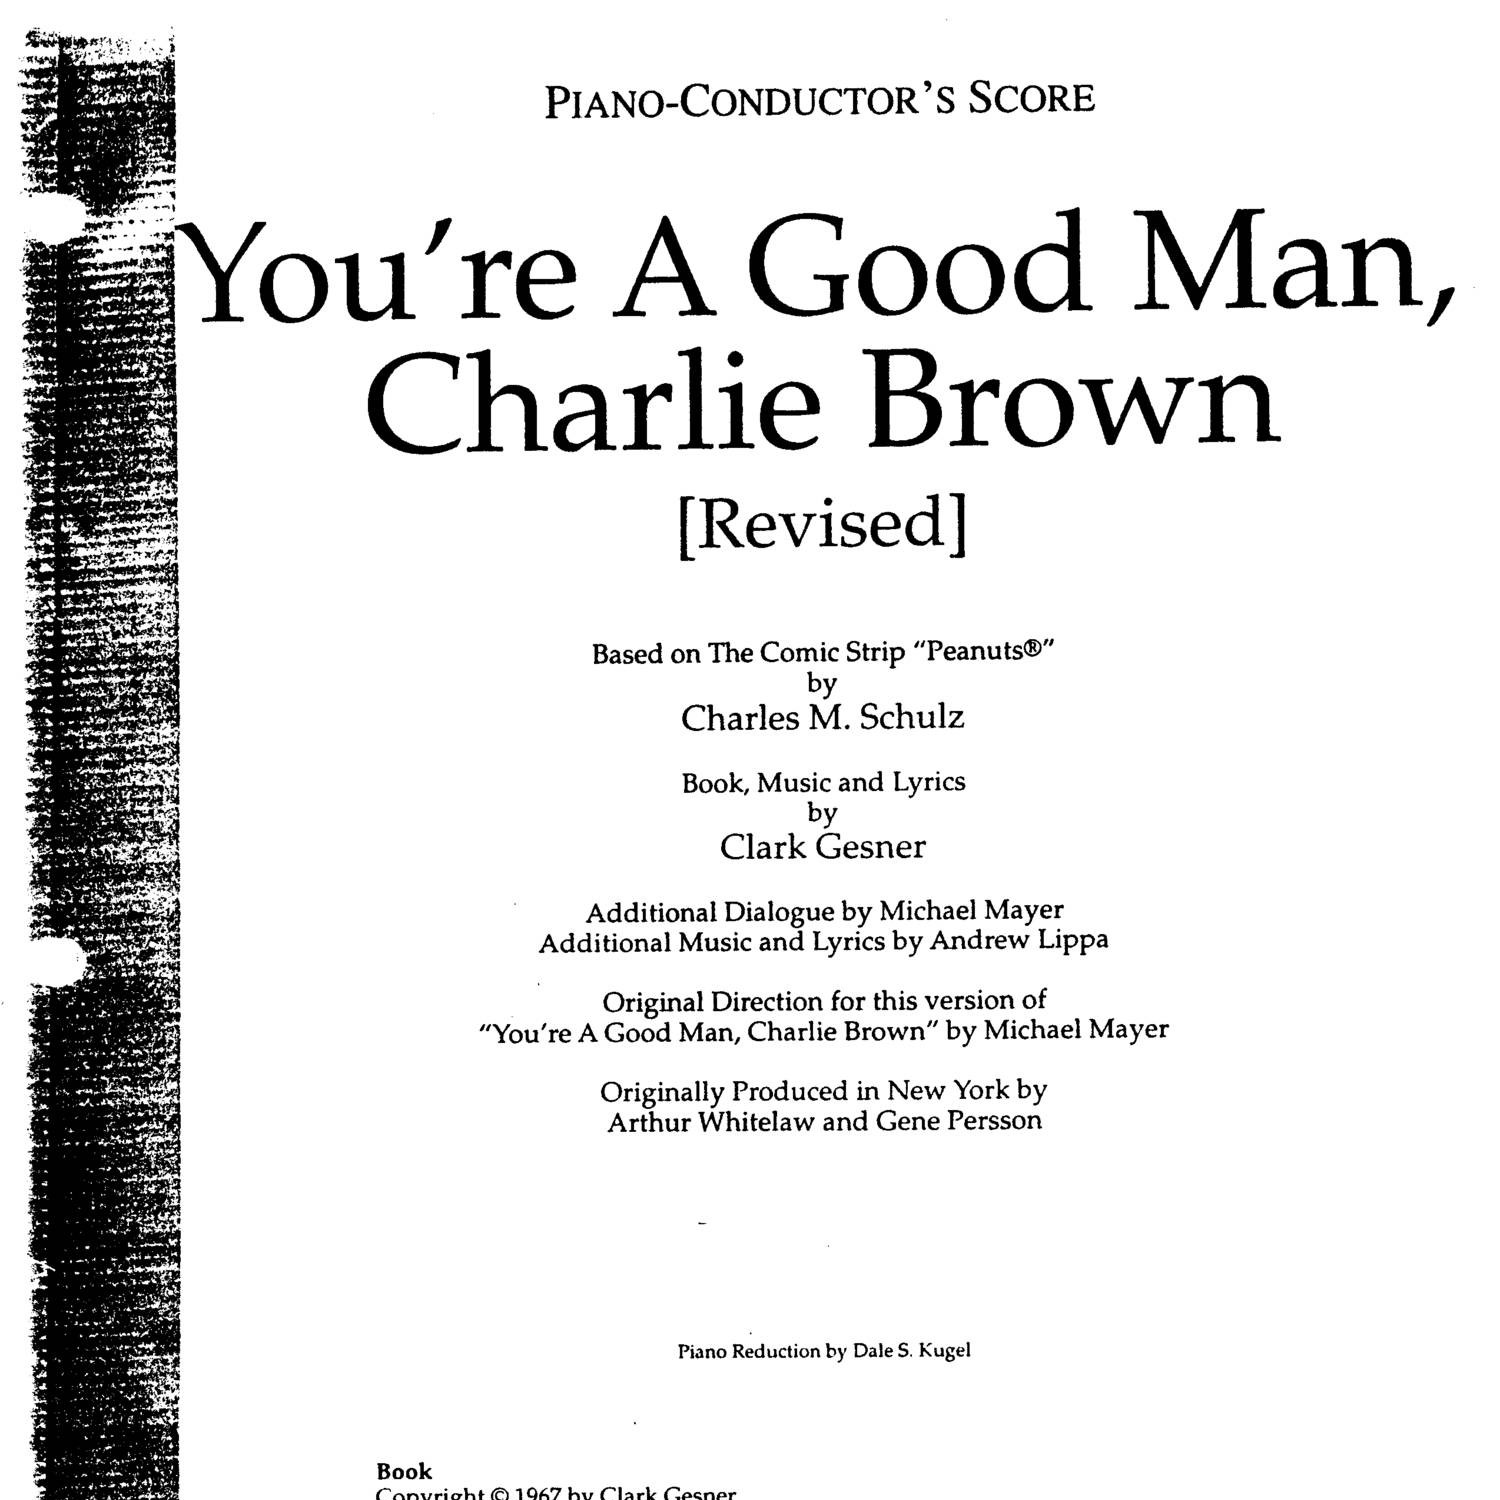 You're A Good Man, Charlie Brown - Conductor Score pdf | DocDroid